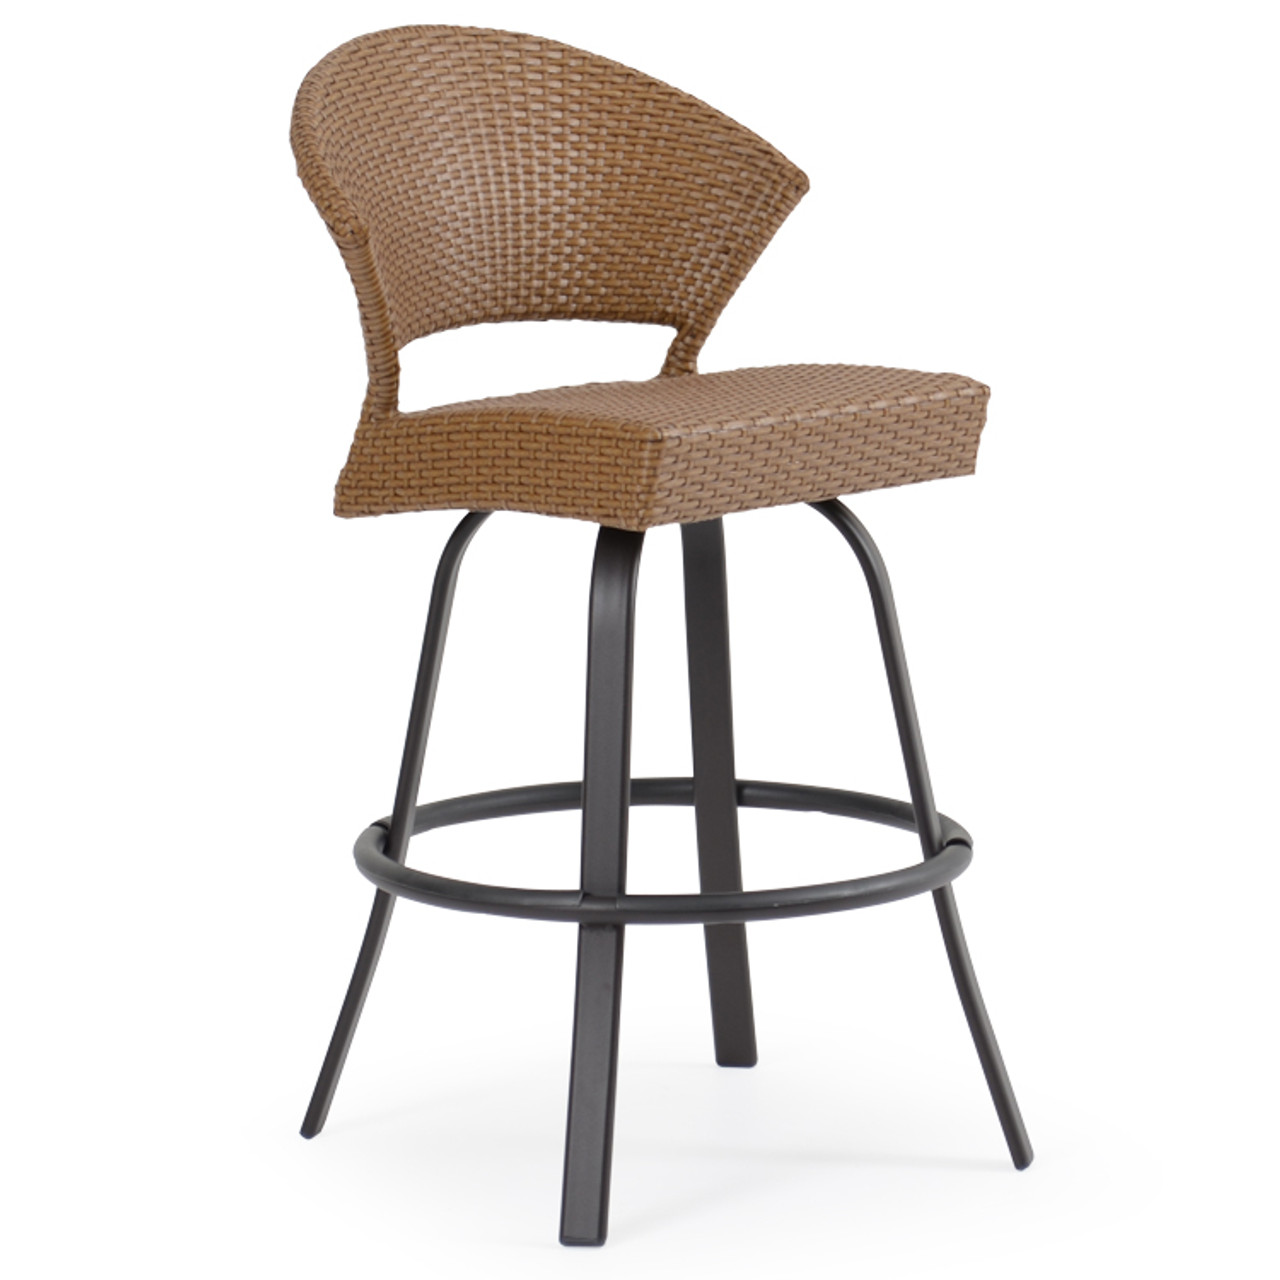 Fine Empire Outdoor Wicker Curved Bar Height Stool Pabps2019 Chair Design Images Pabps2019Com